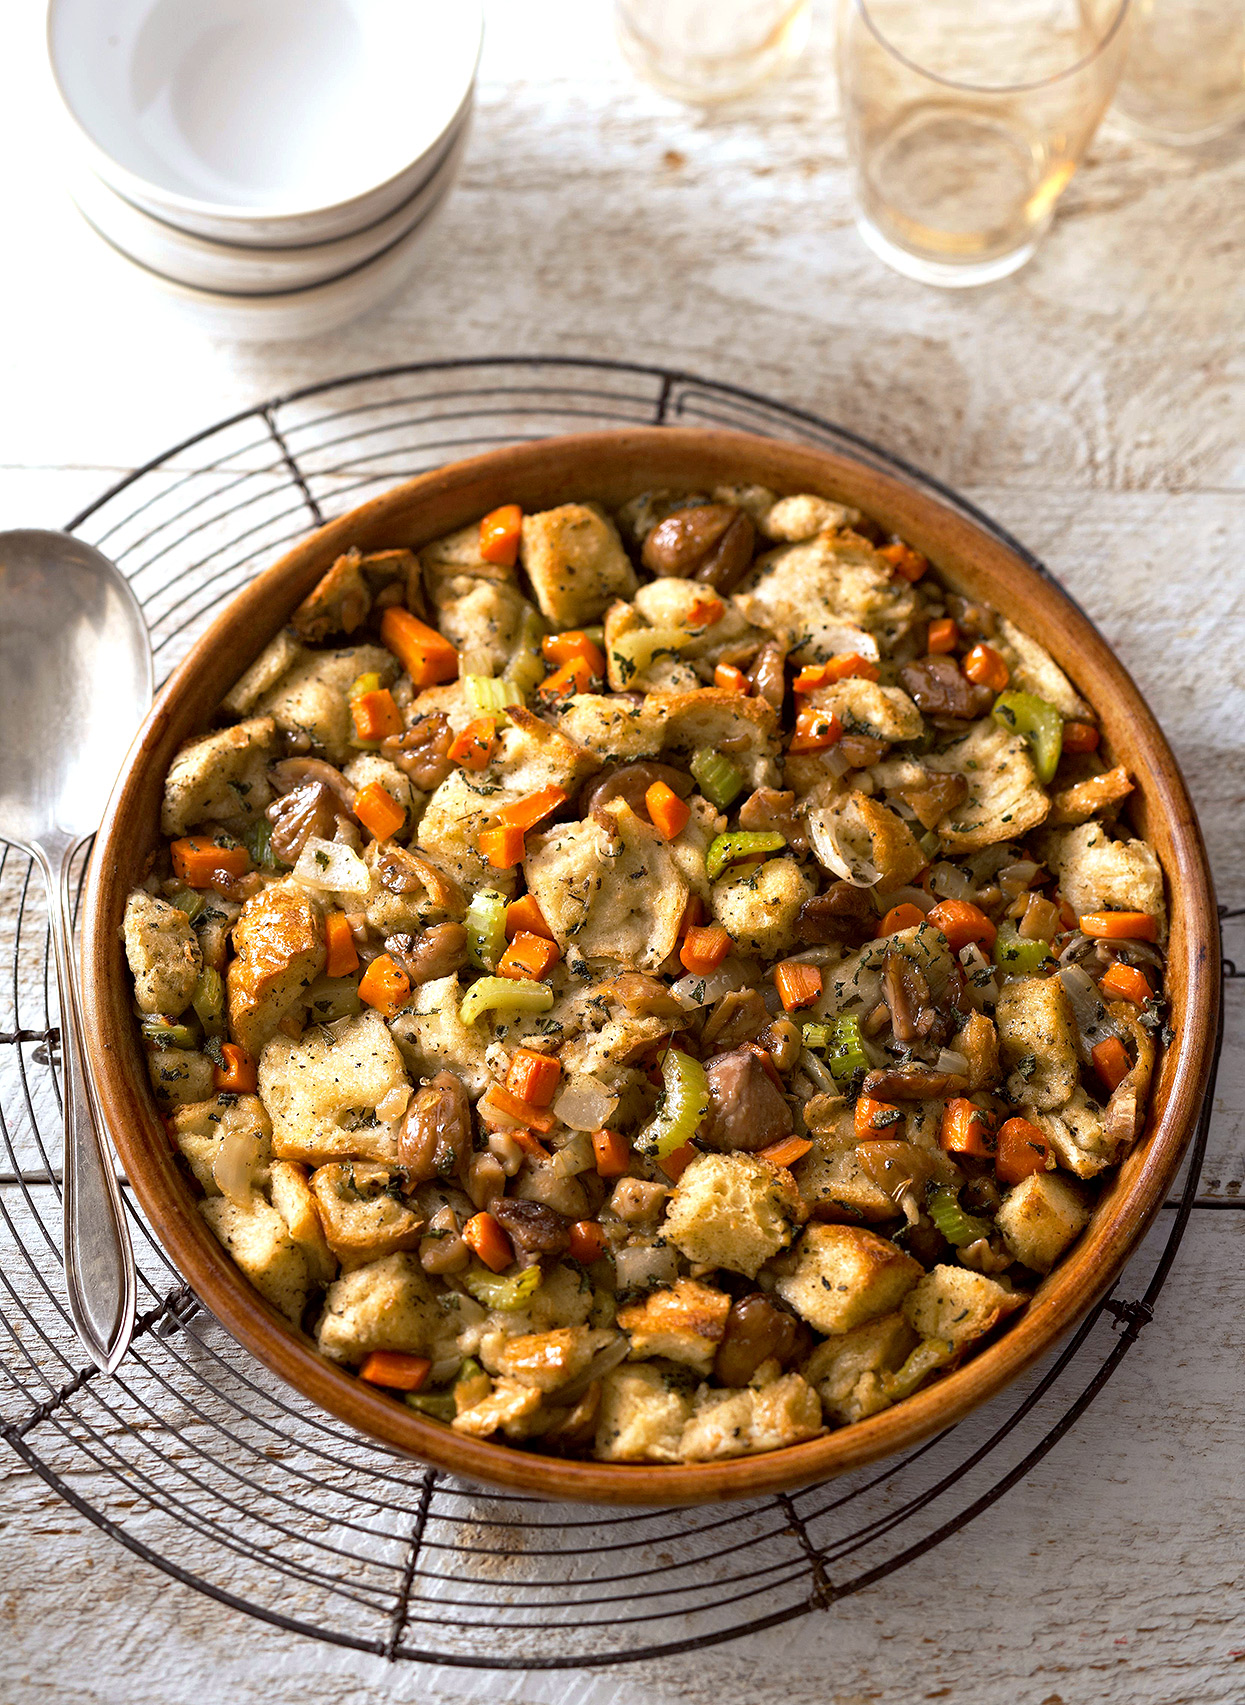 Roasted Chestnut Stuffing